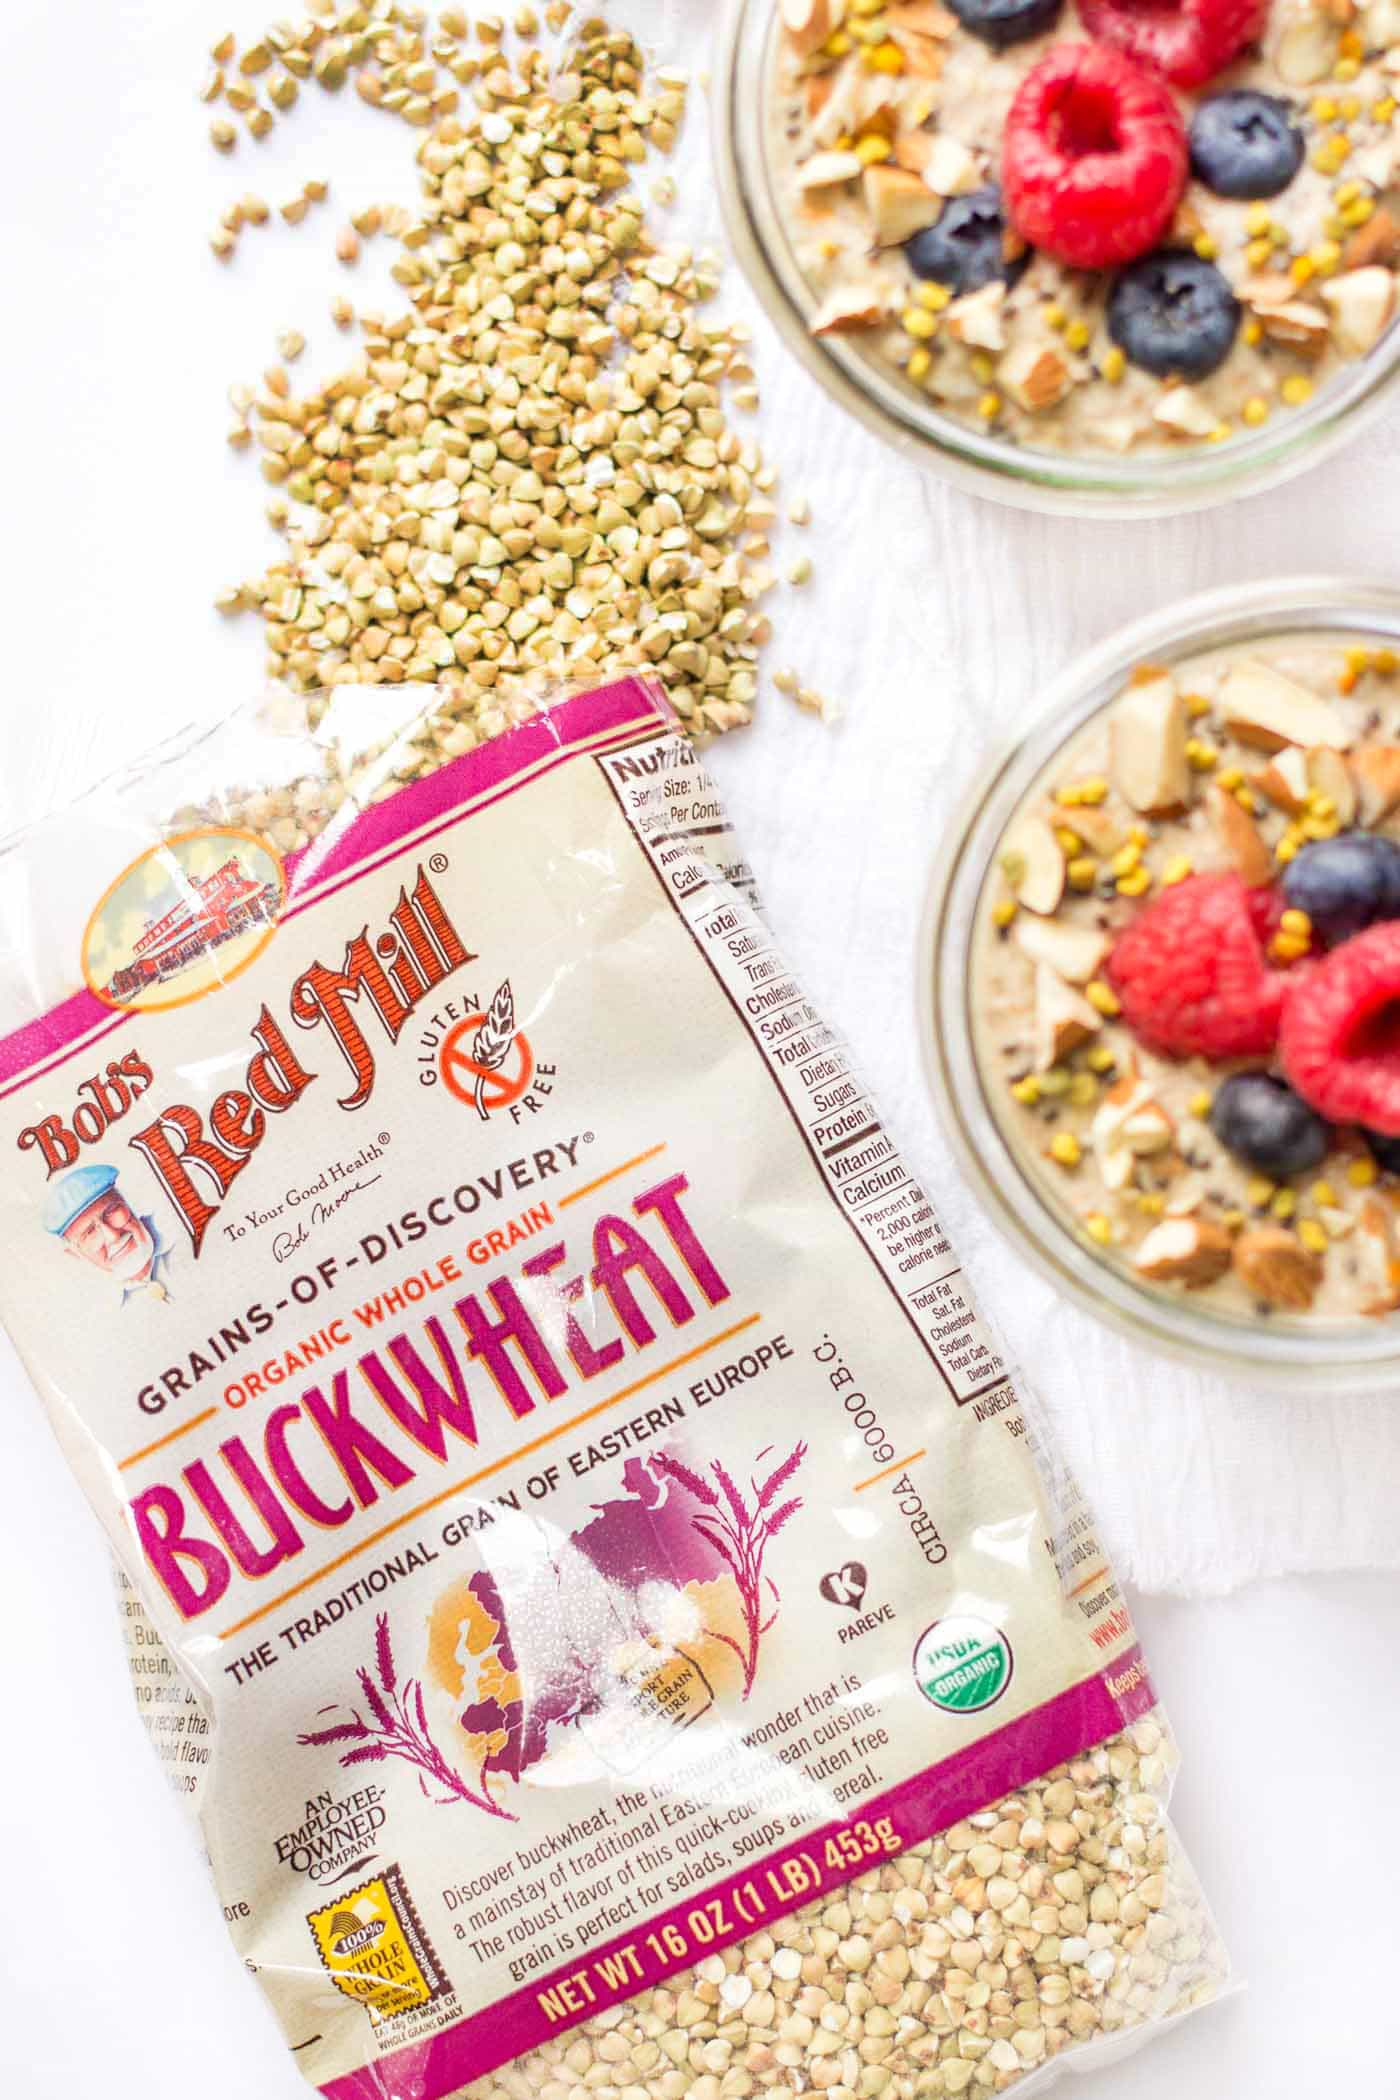 Buckwheat is an AMAZING way to start your day -- whip it up in this raw porridge and you'll be amazed how you feel all day long!